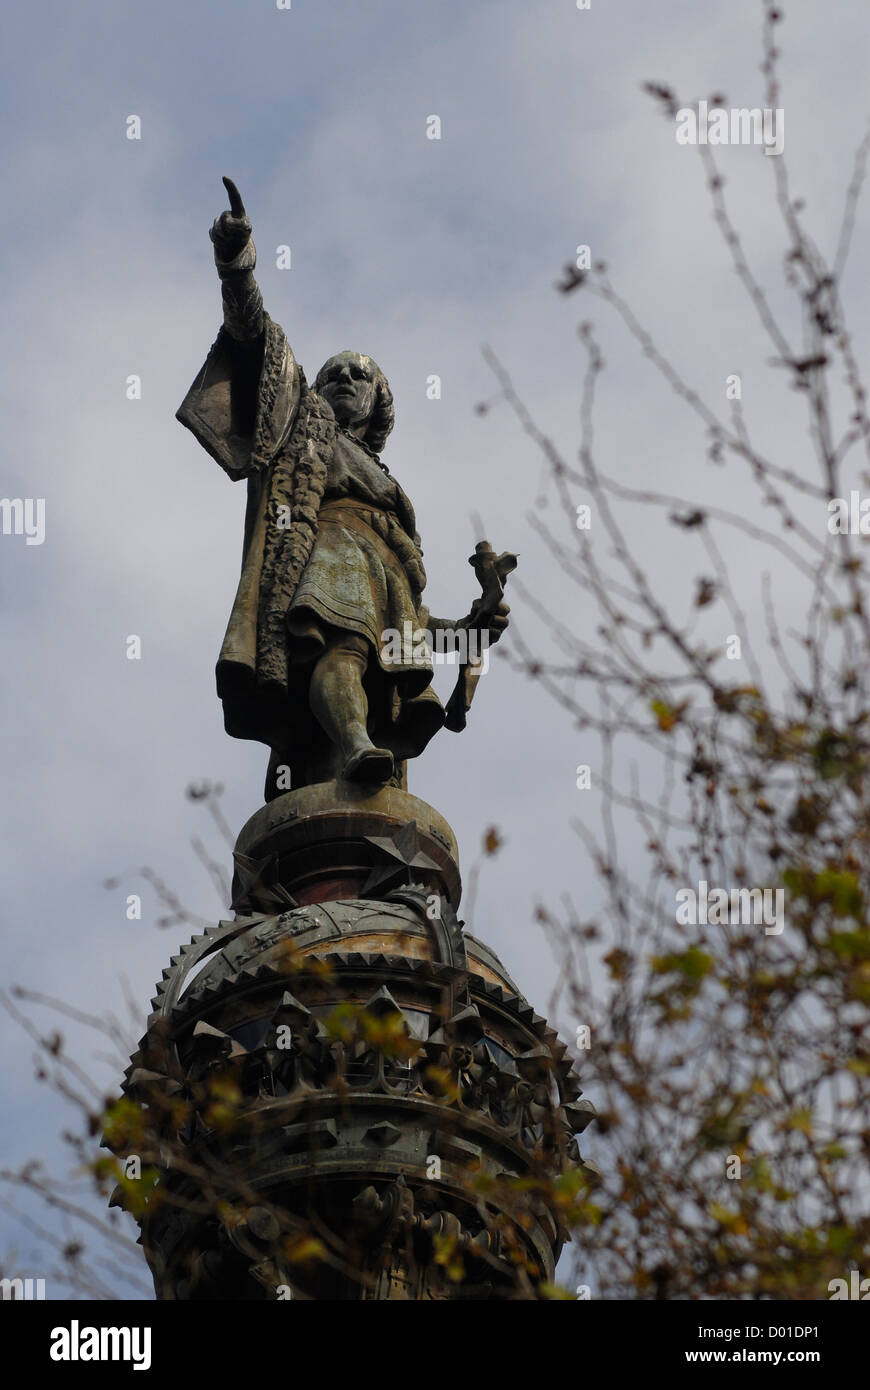 Christopher Columbus Statue monument in Barcelona, Spain - Stock Image